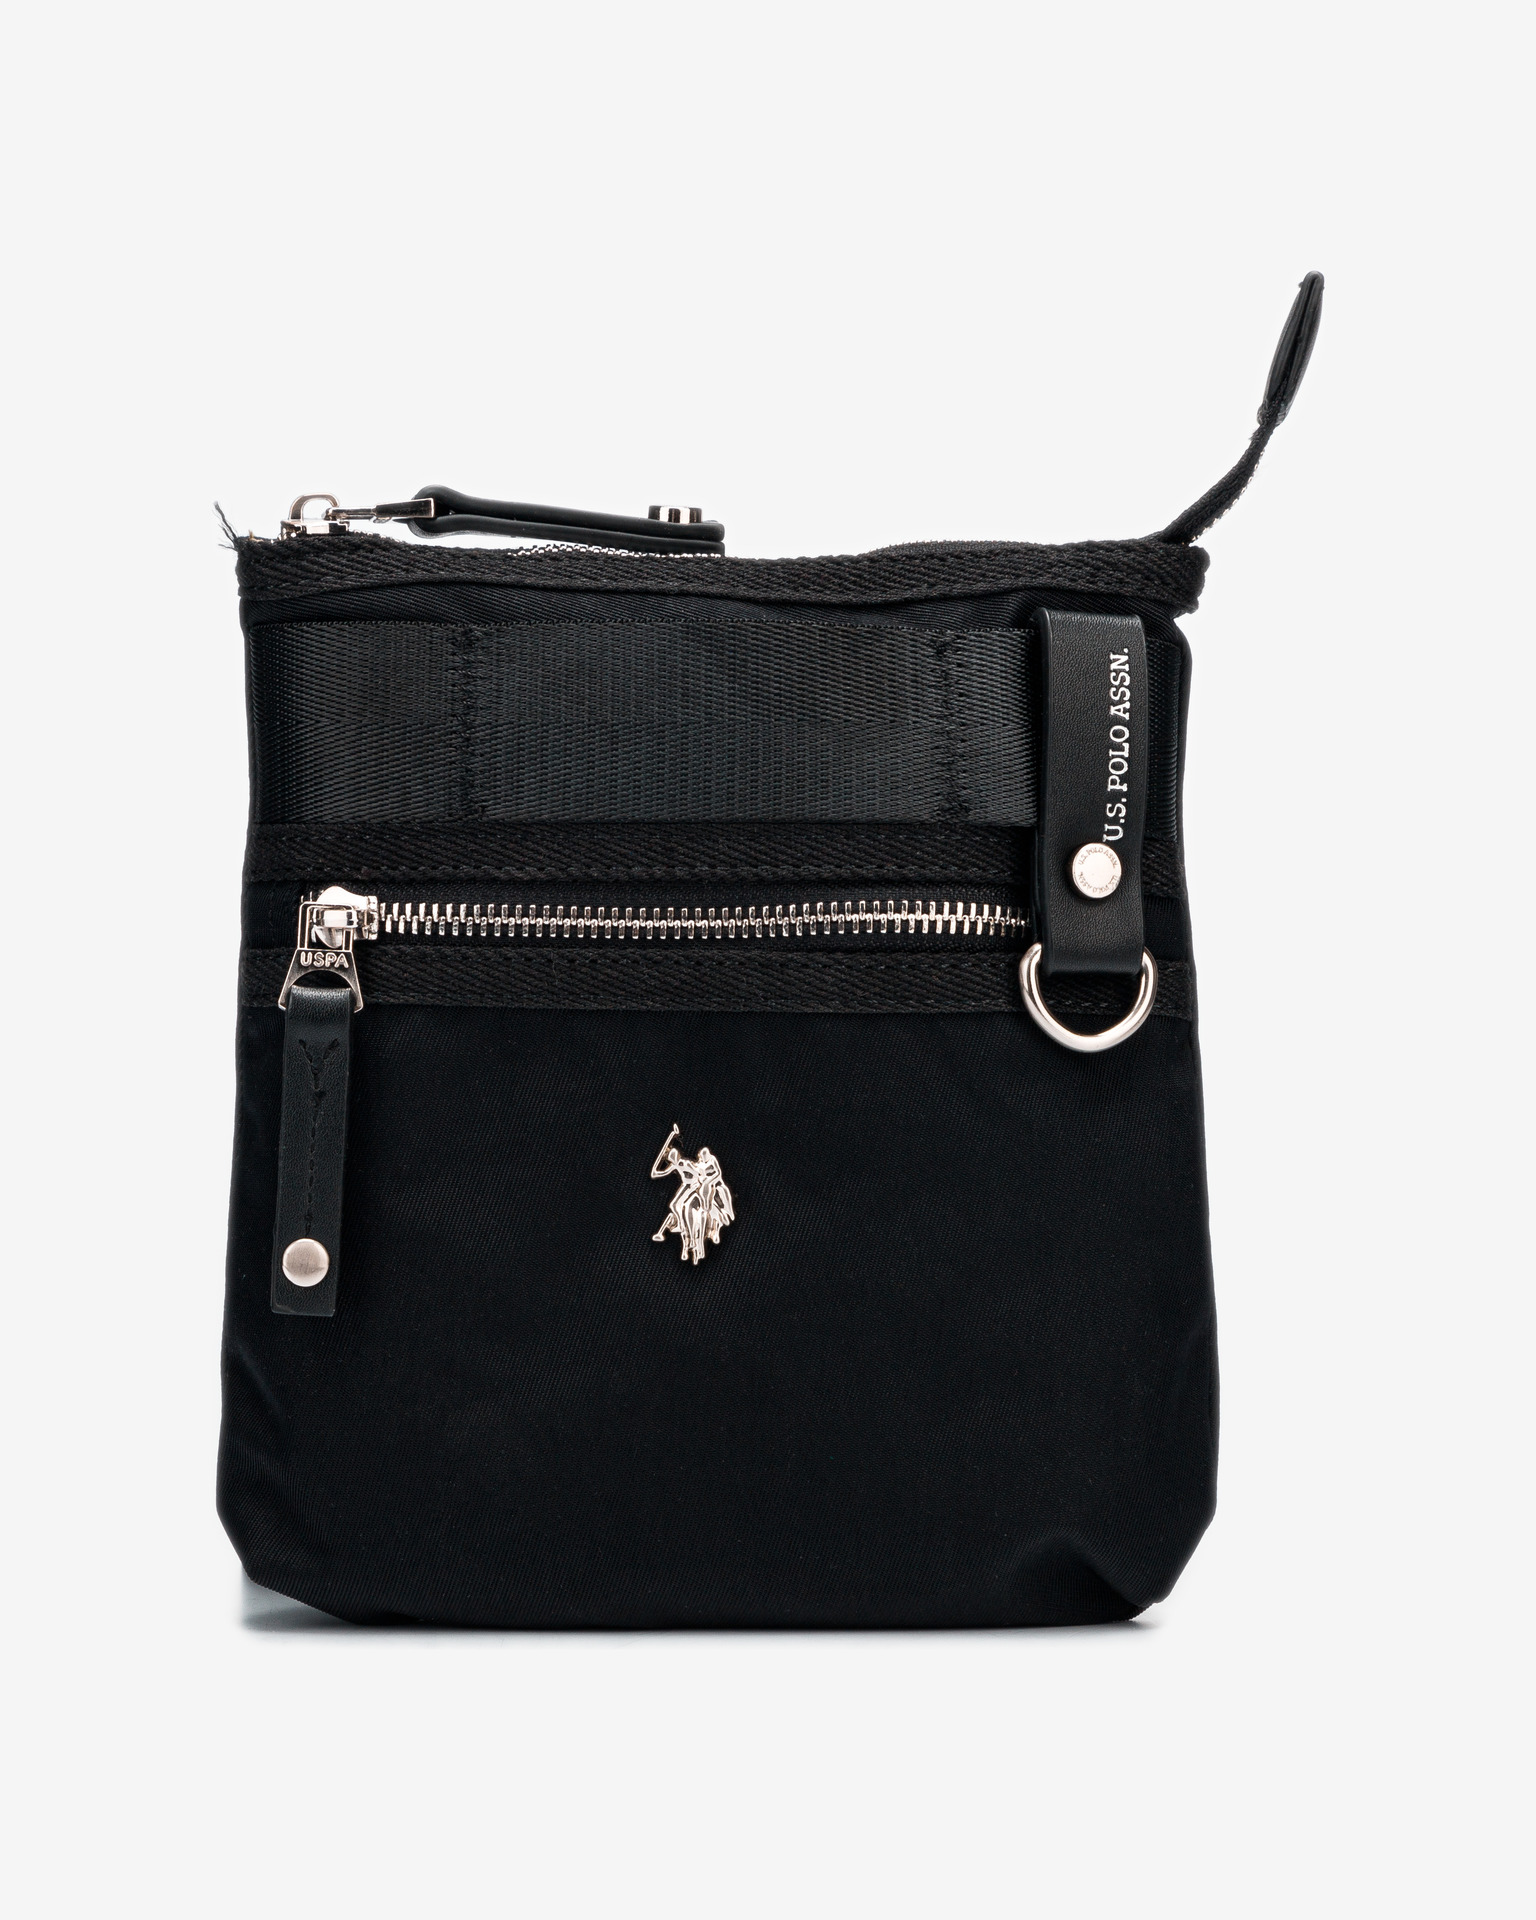 New Waganer Cross body bag US Polo Assn